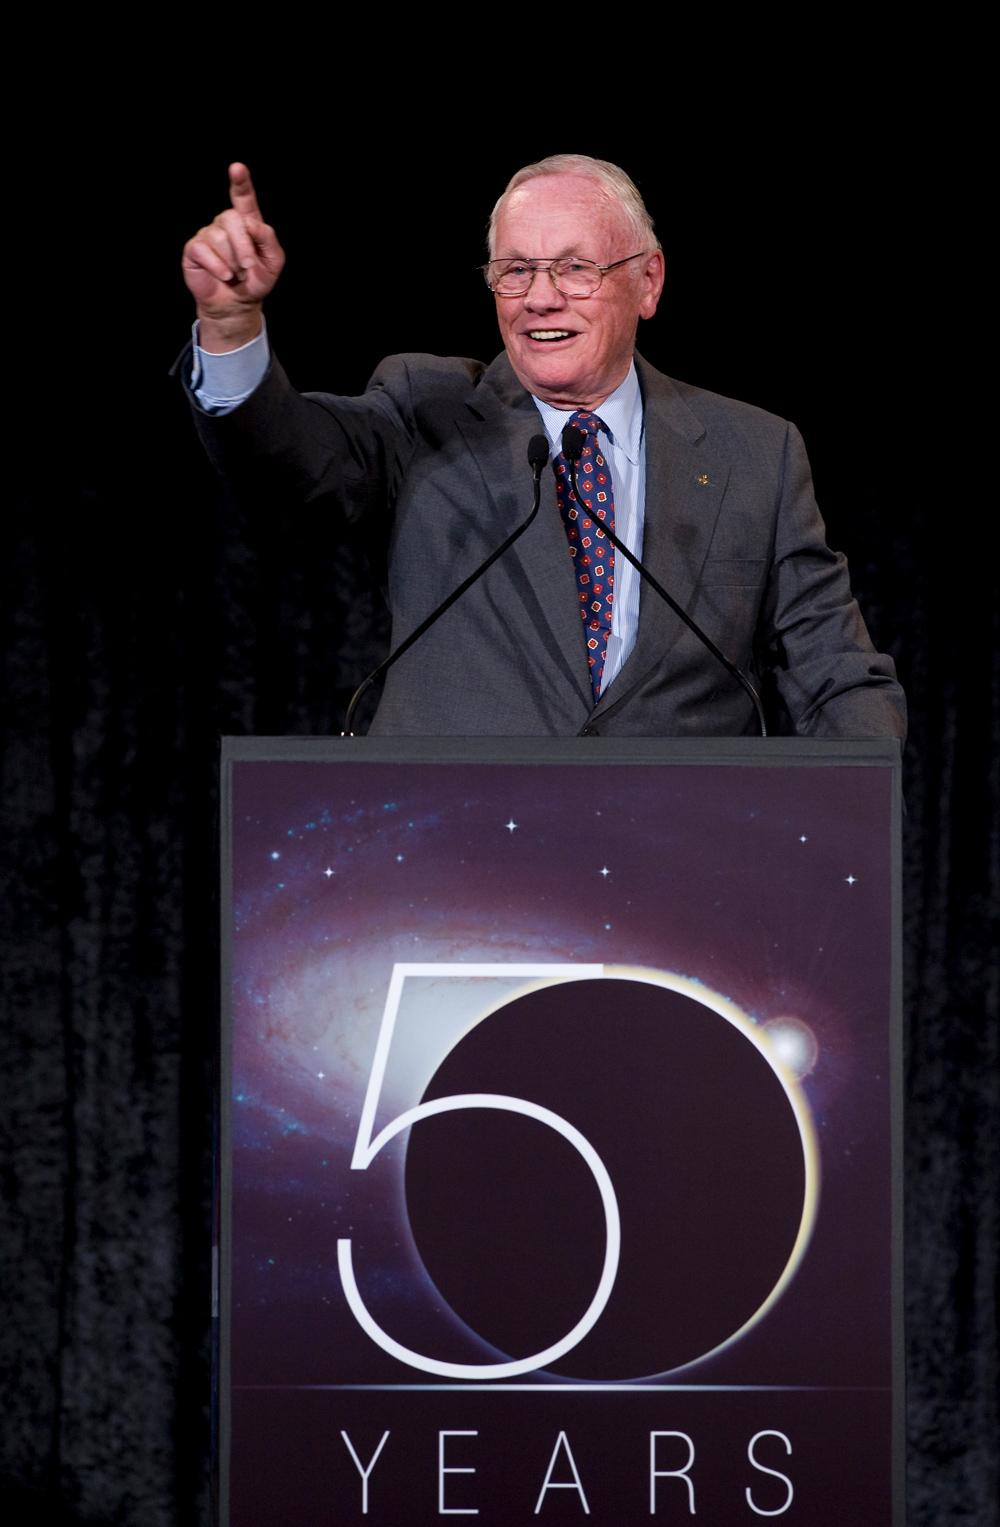 Neil Armstrong Speaks at NASA's 50th Anniversary Gala